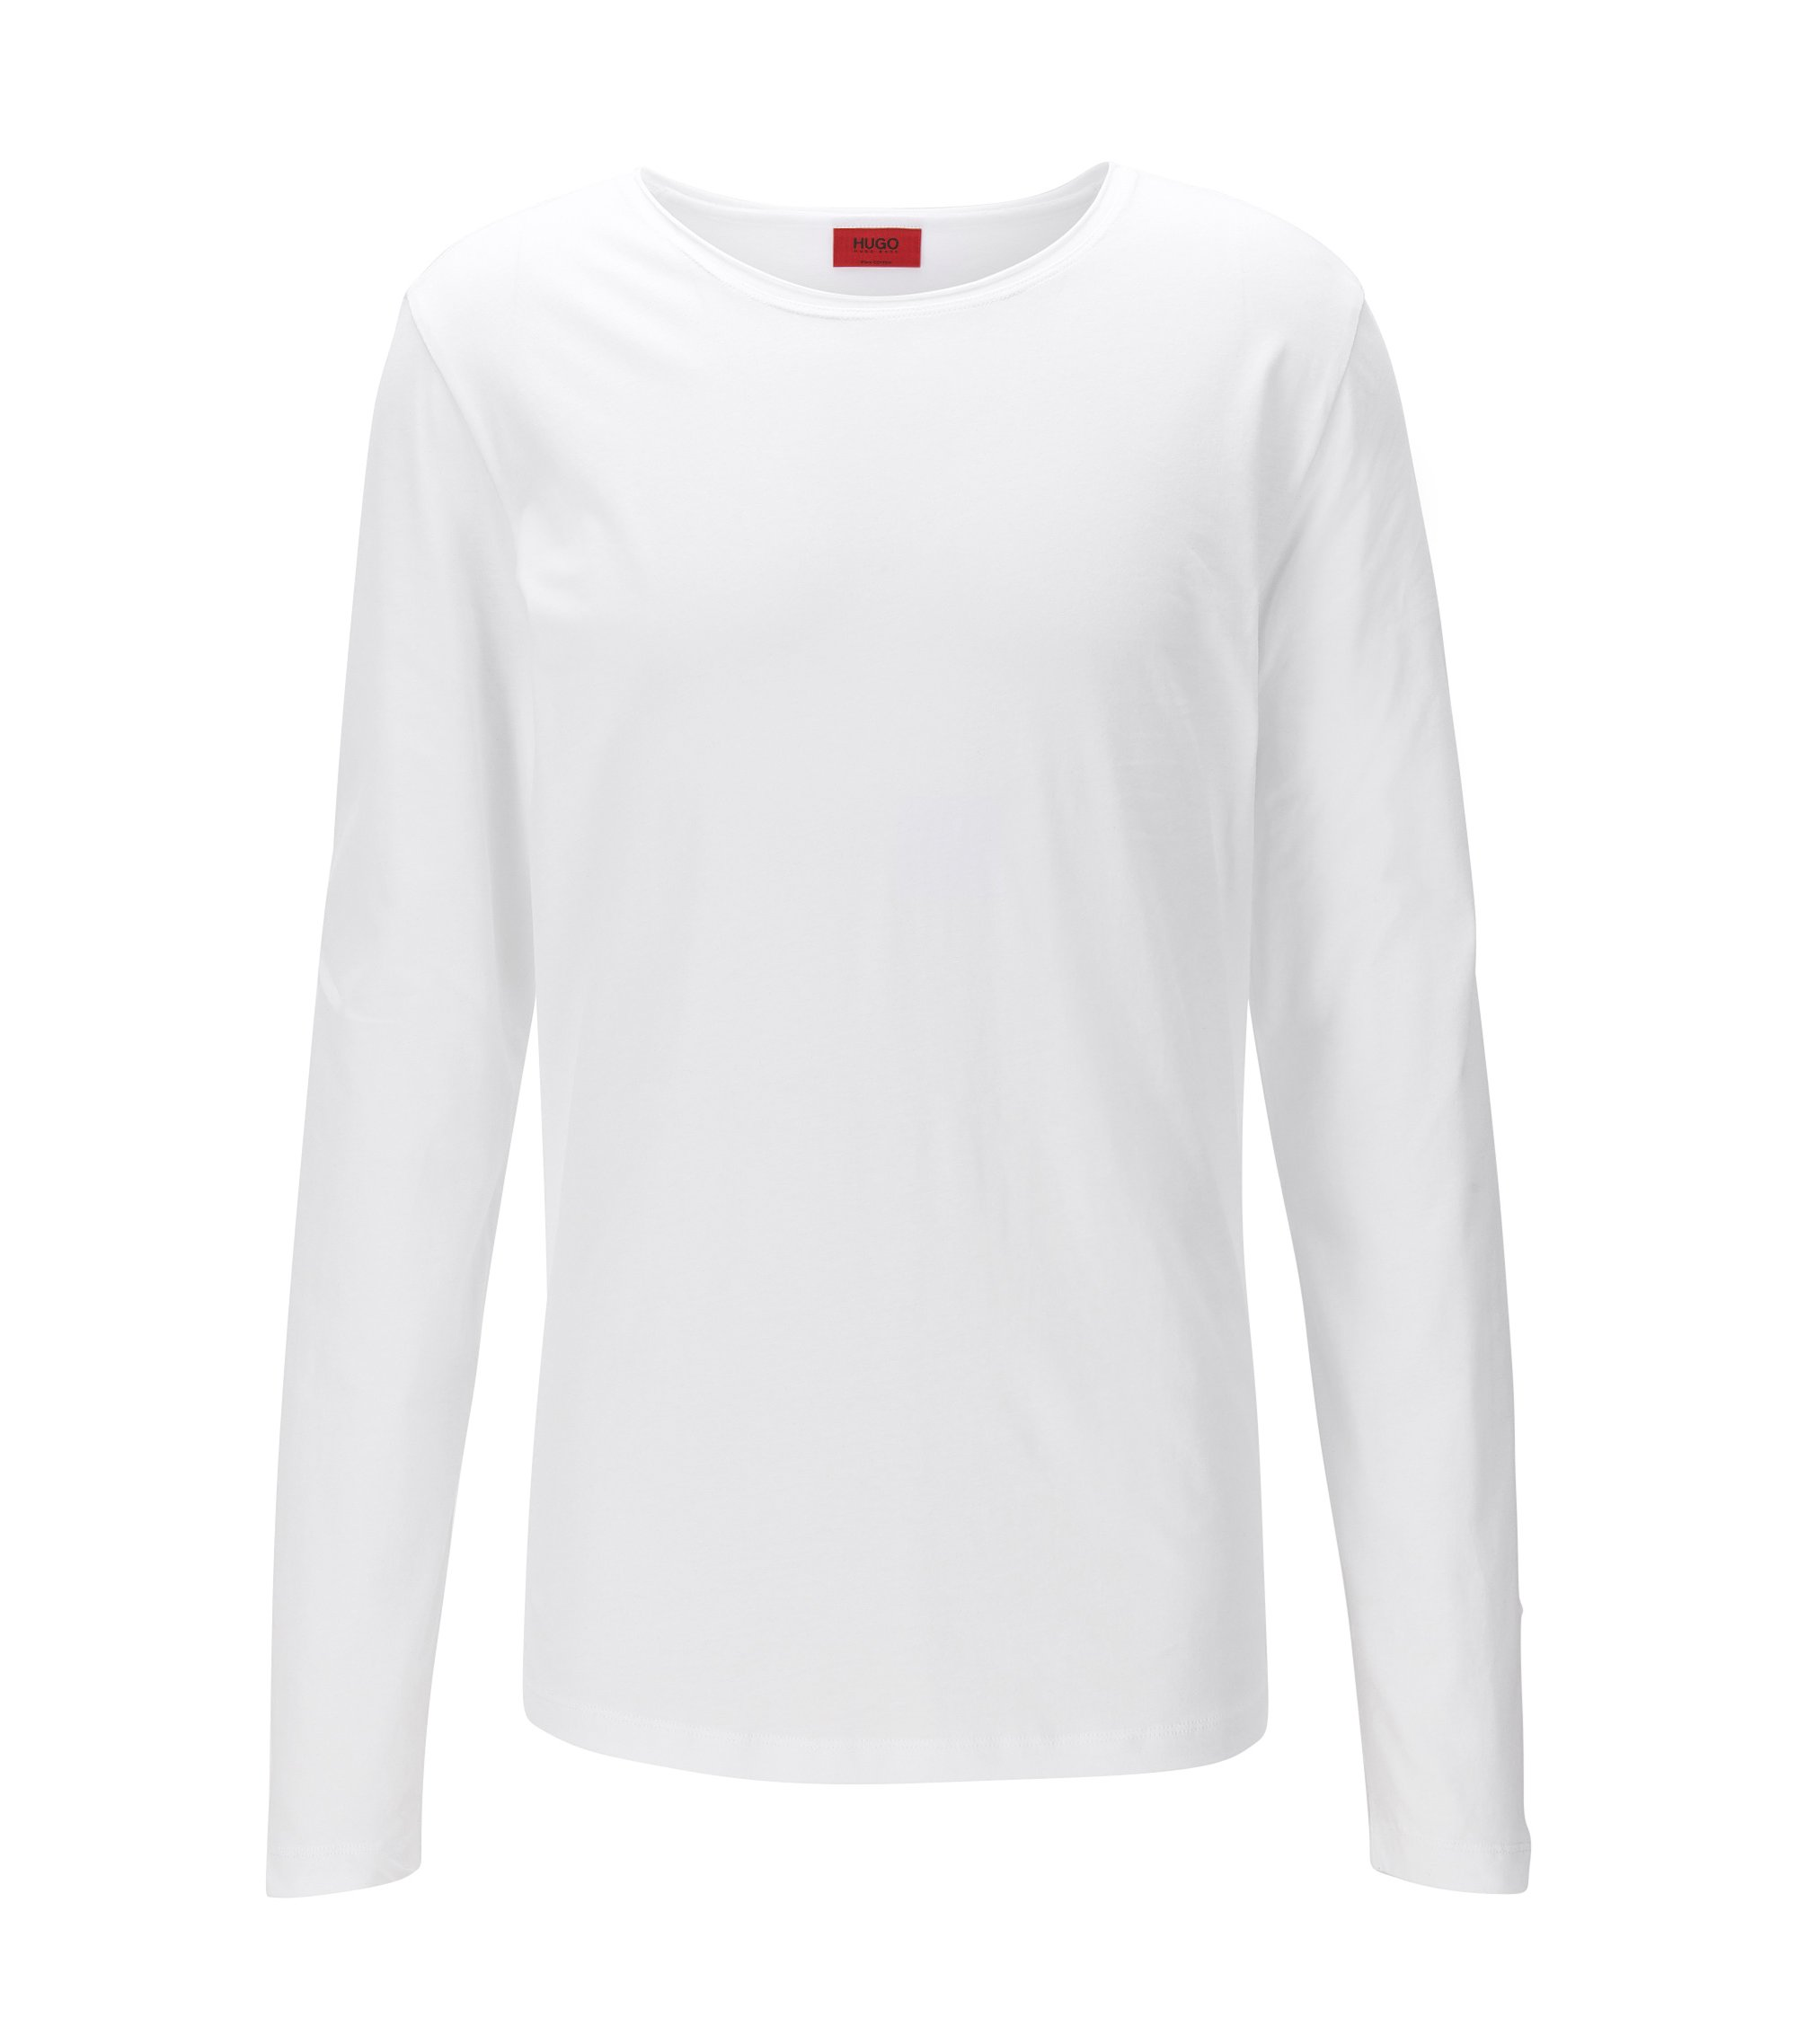 Cotton Jersey T-Shirt | Doopso, White